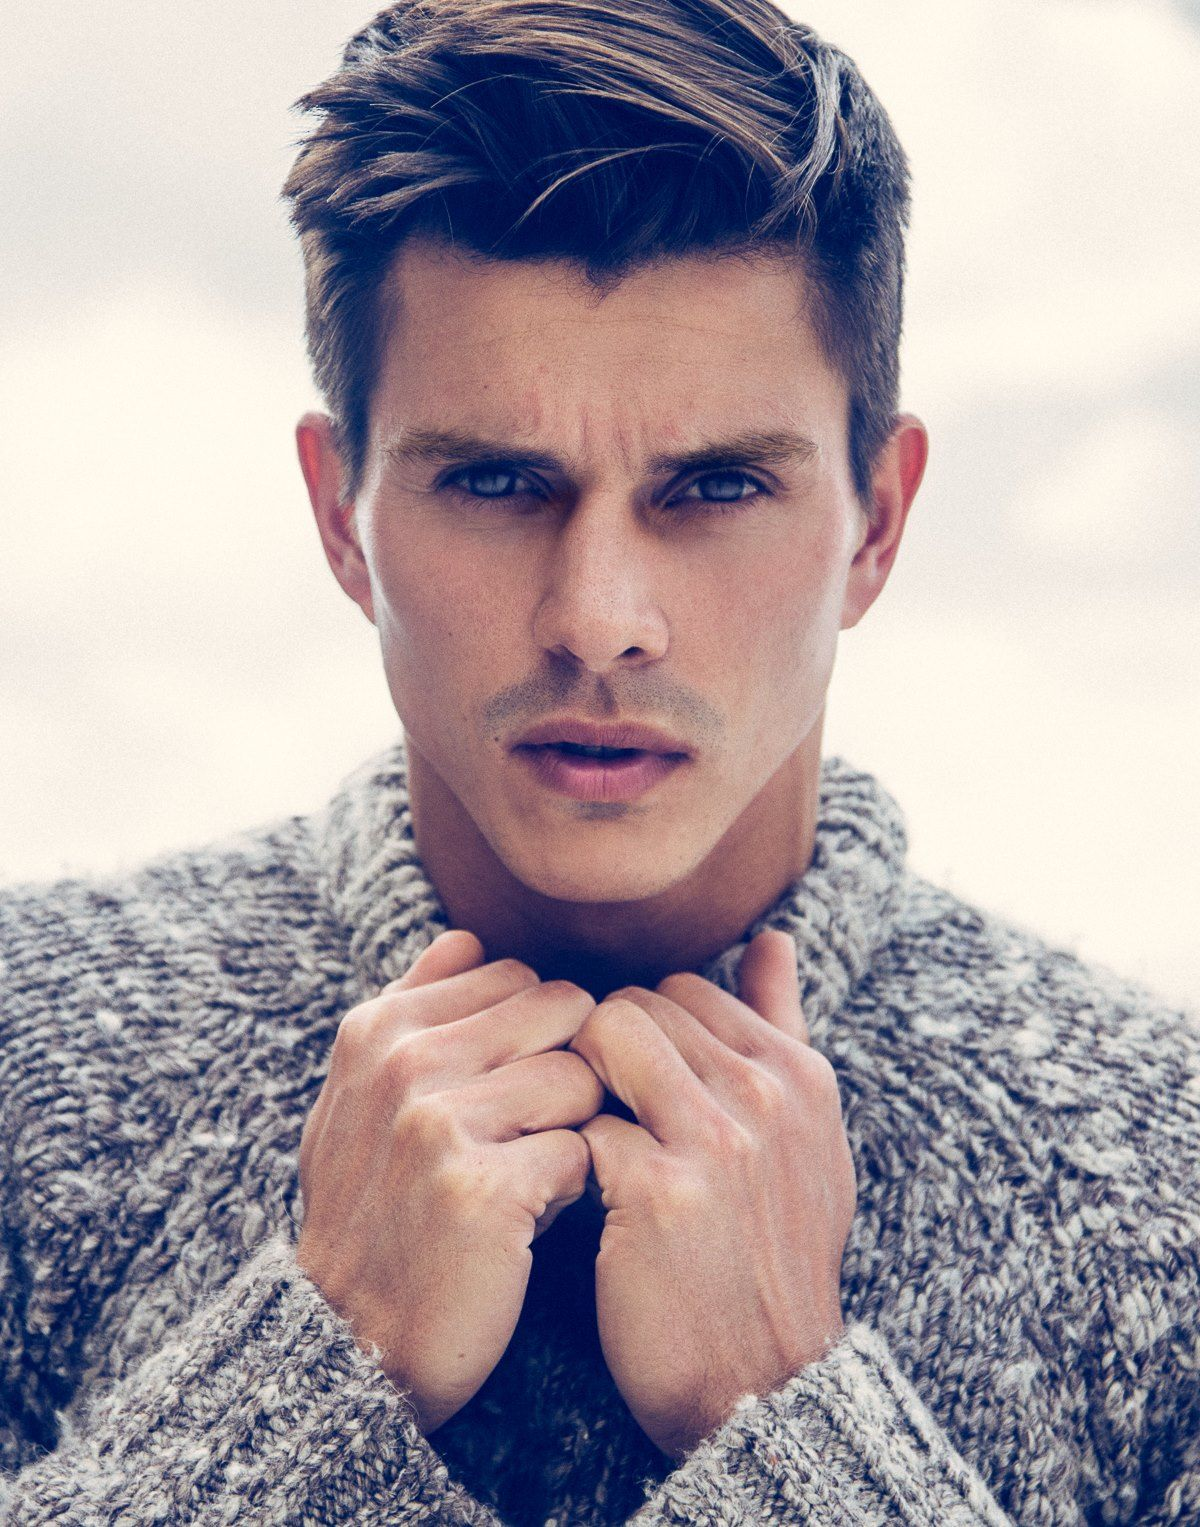 40 hairstyles for thick hair men's | perfect man, ph and haircuts